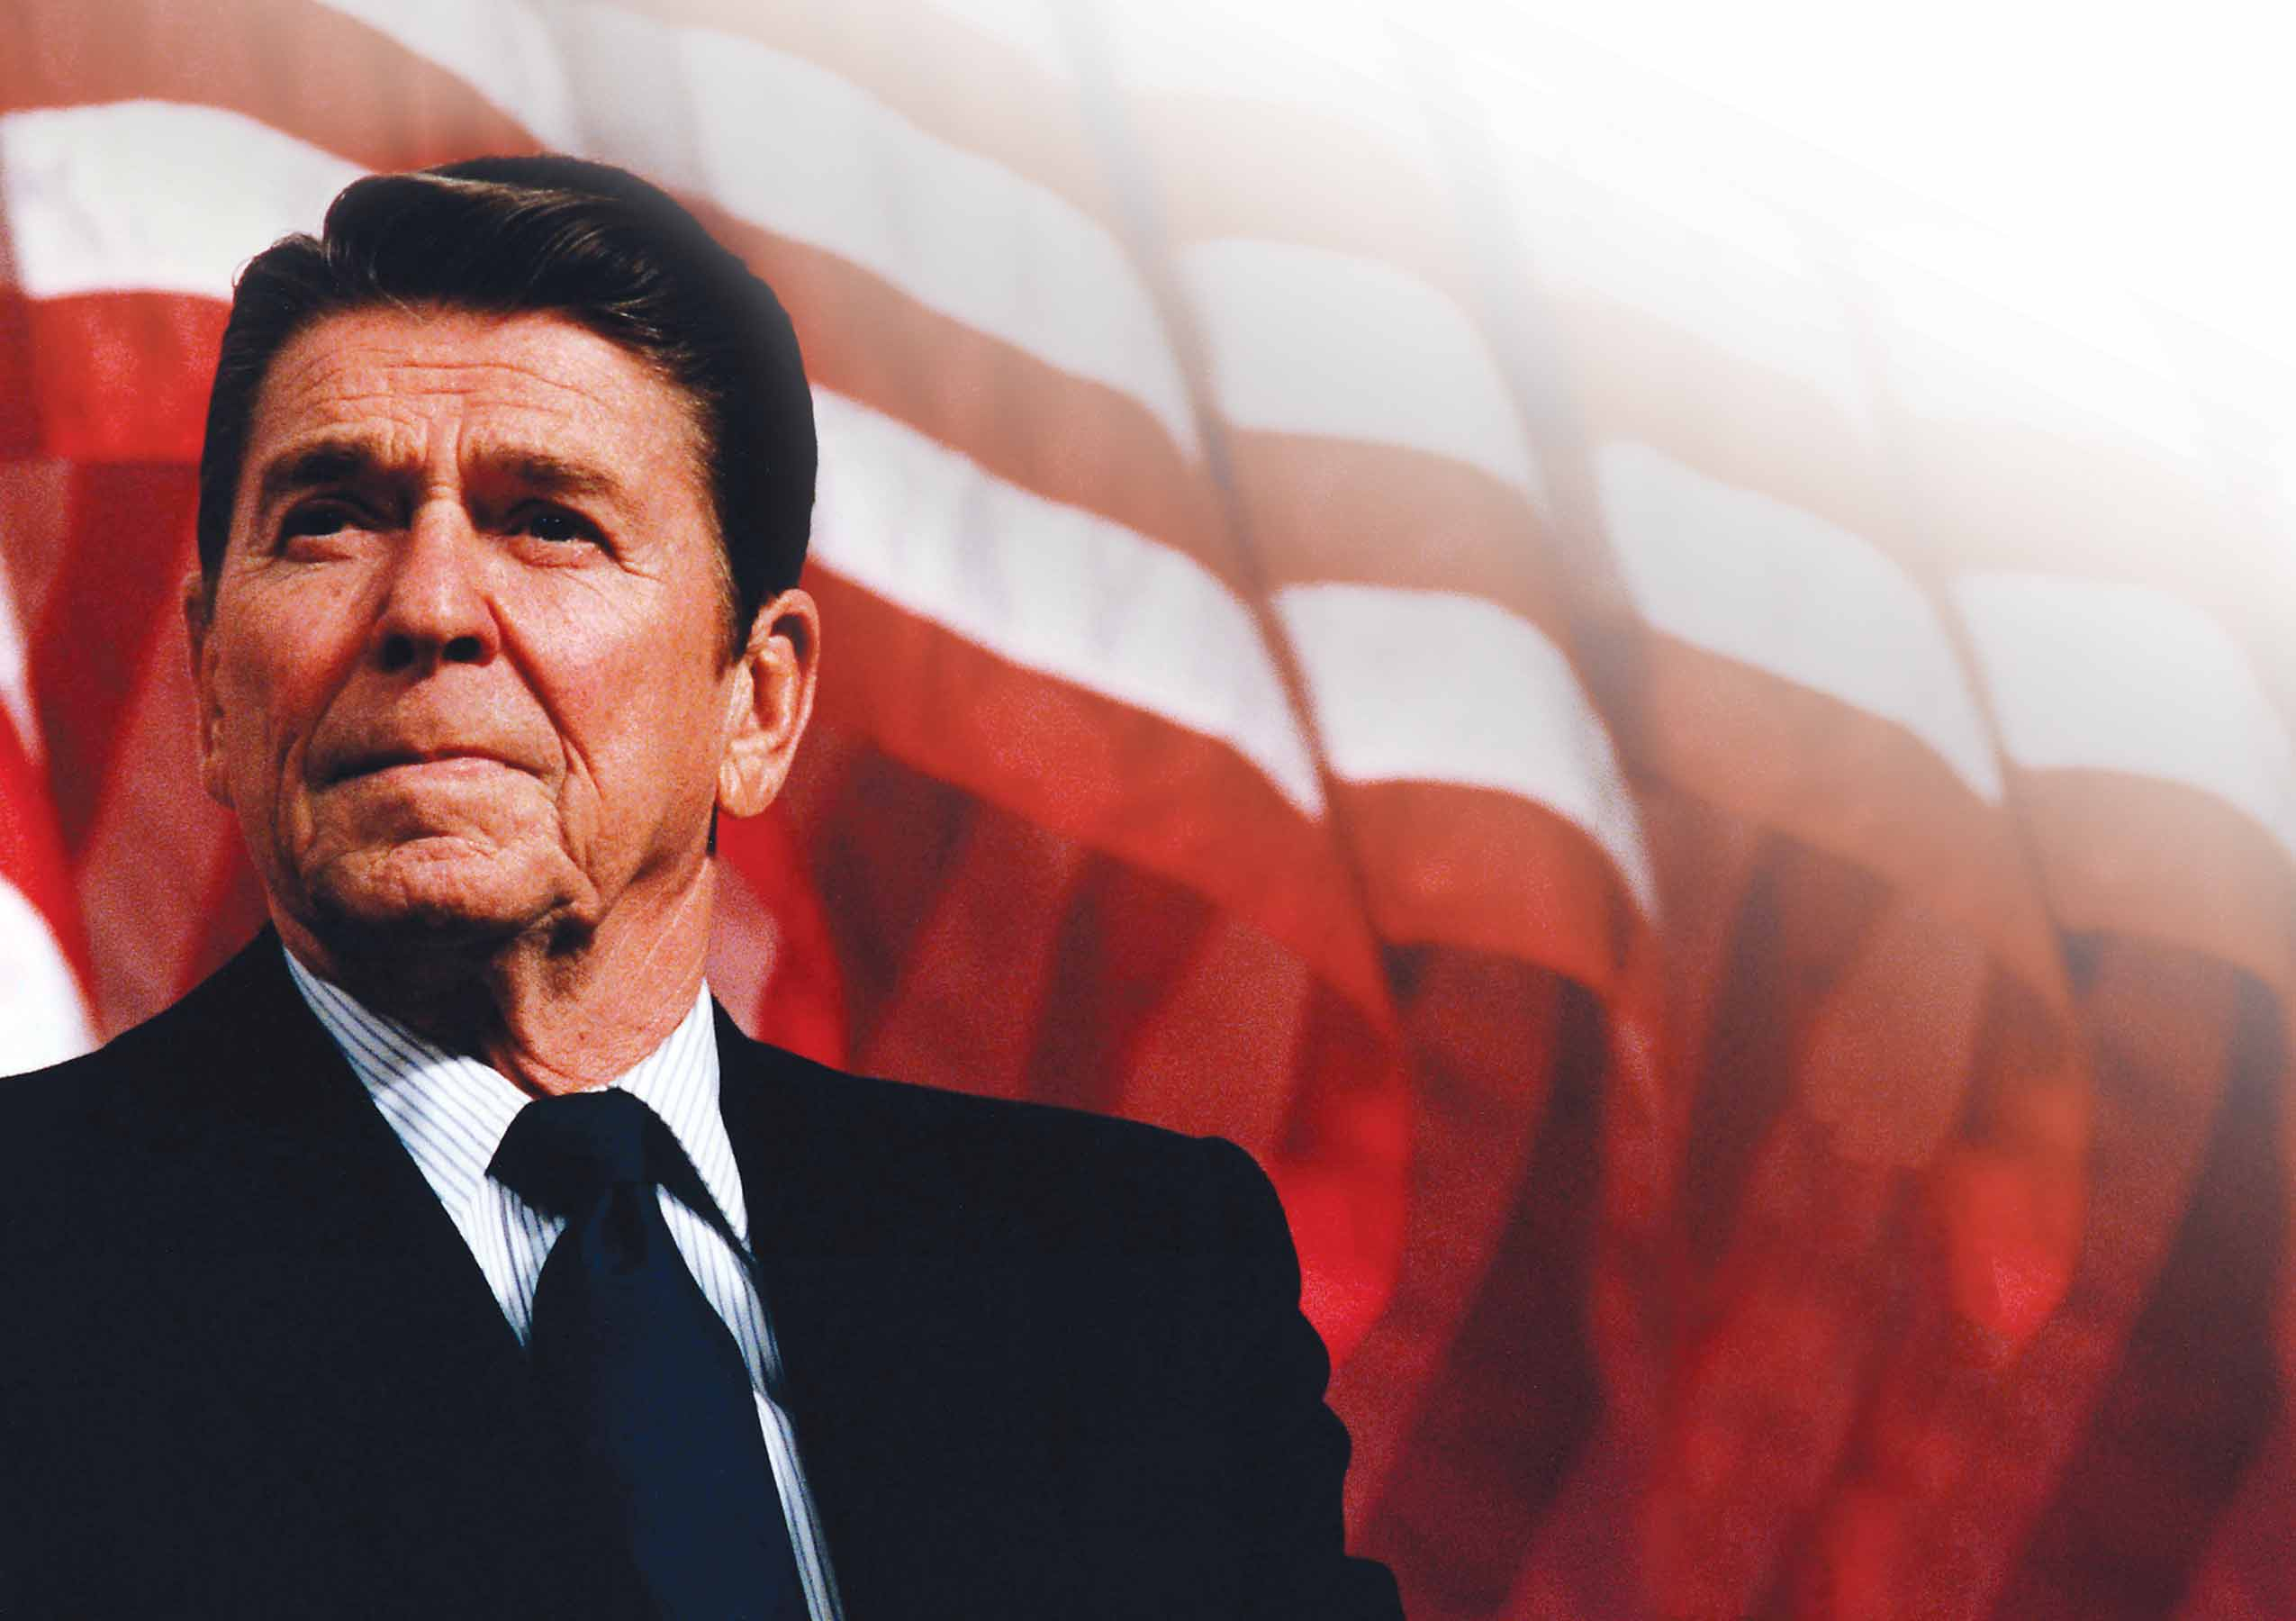 President Ronald Reagan looking thoughtfully into the distance, with American flag flying in background